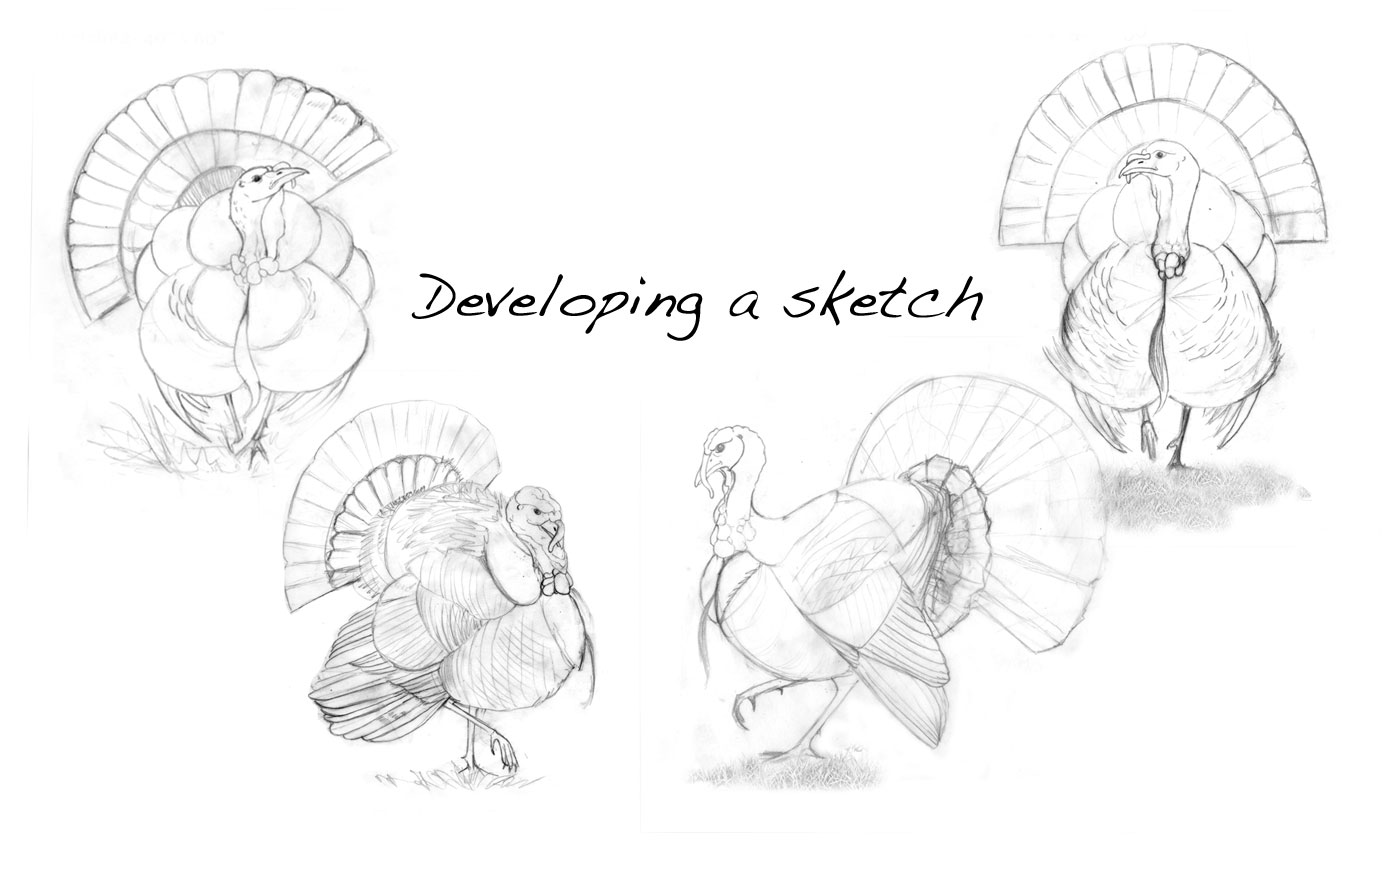 DevelopingSketch